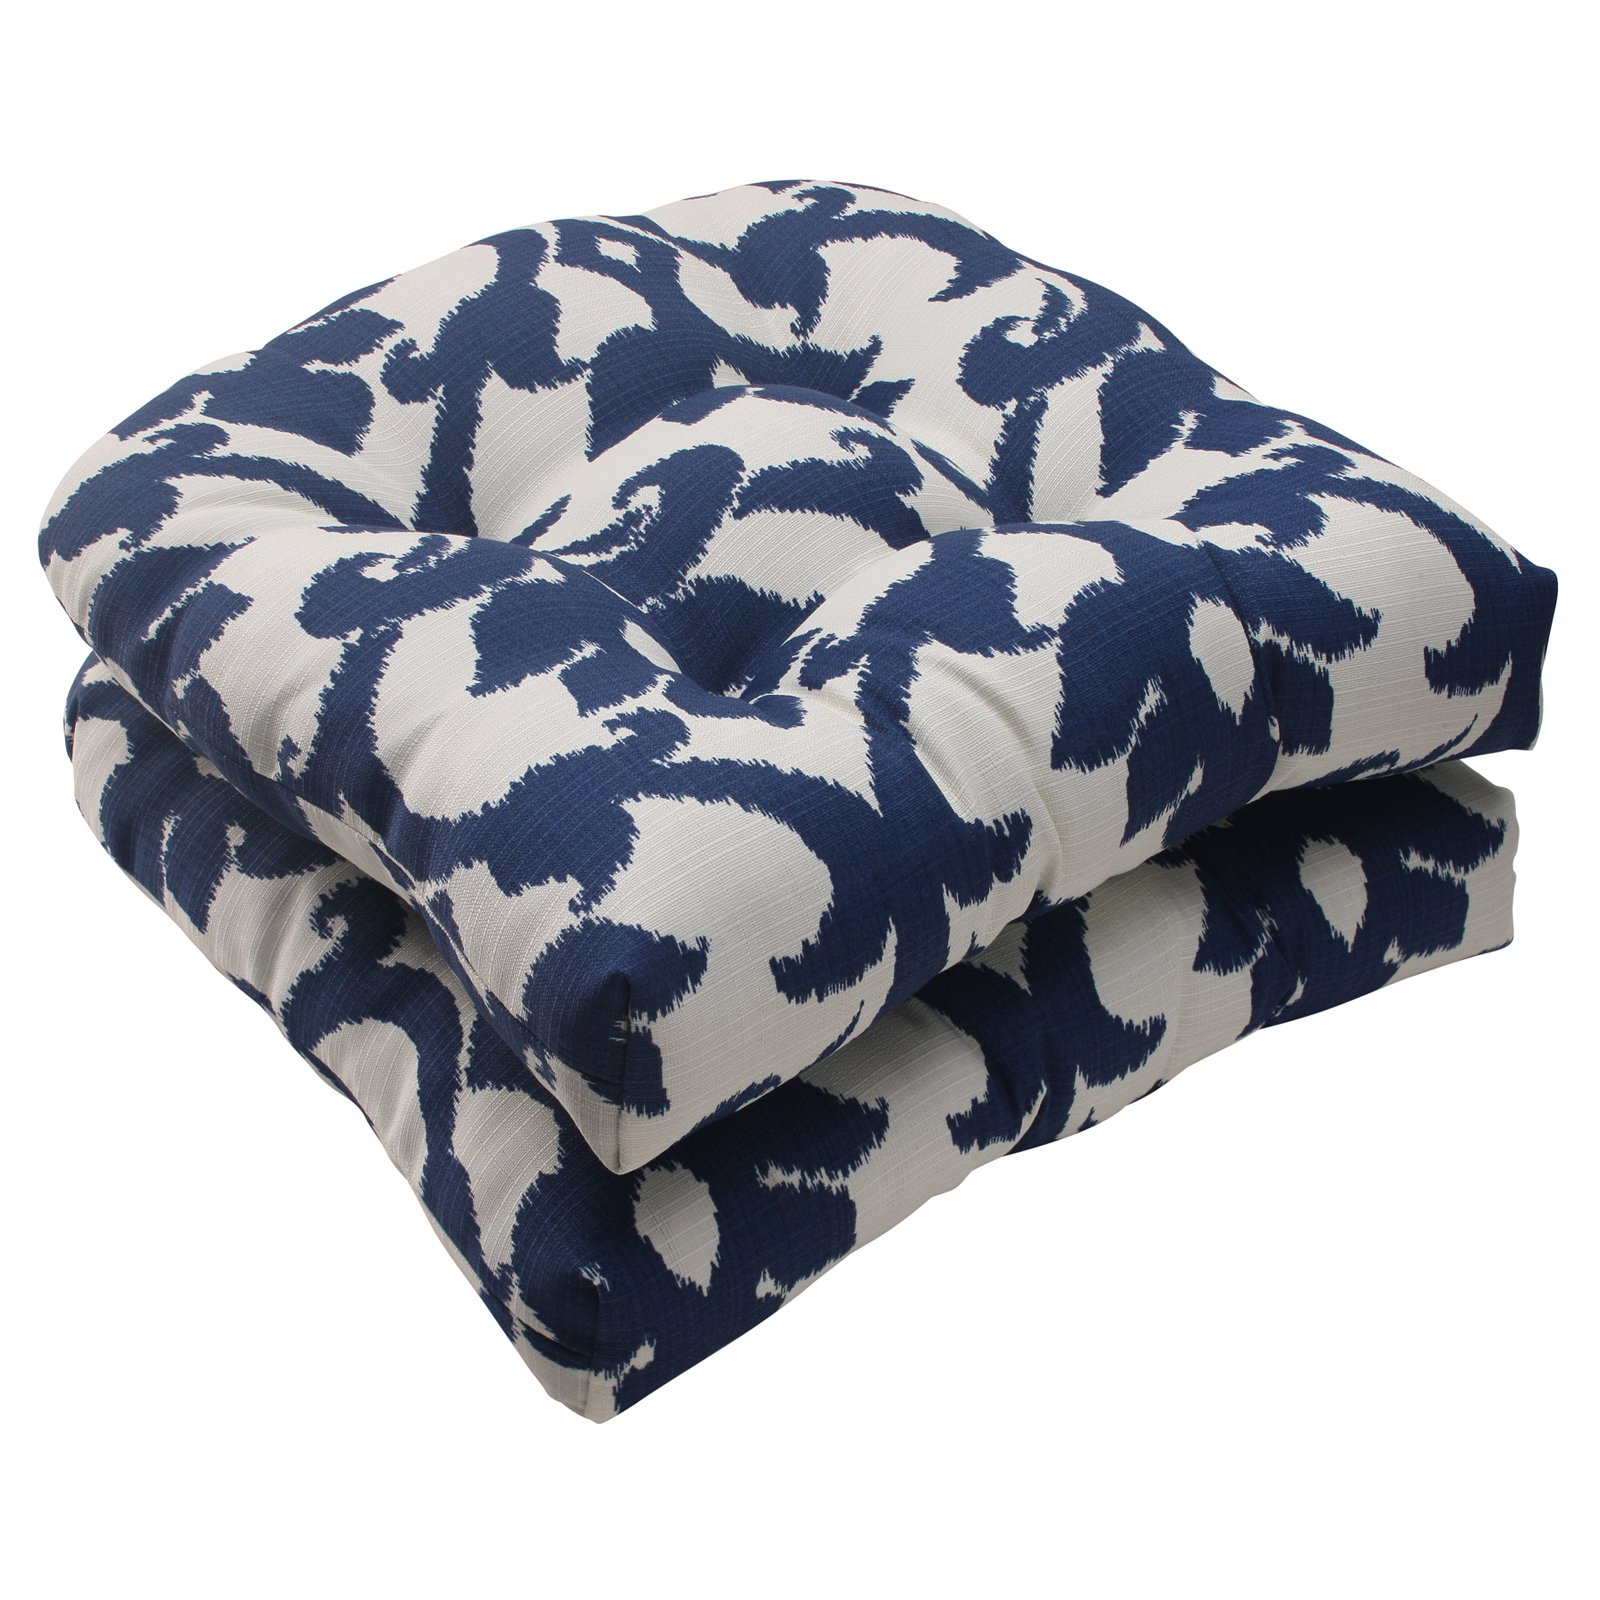 Pillow Perfect Outdoor/ Indoor Bosco Navy Wicker Seat Cushion (Set of 2)